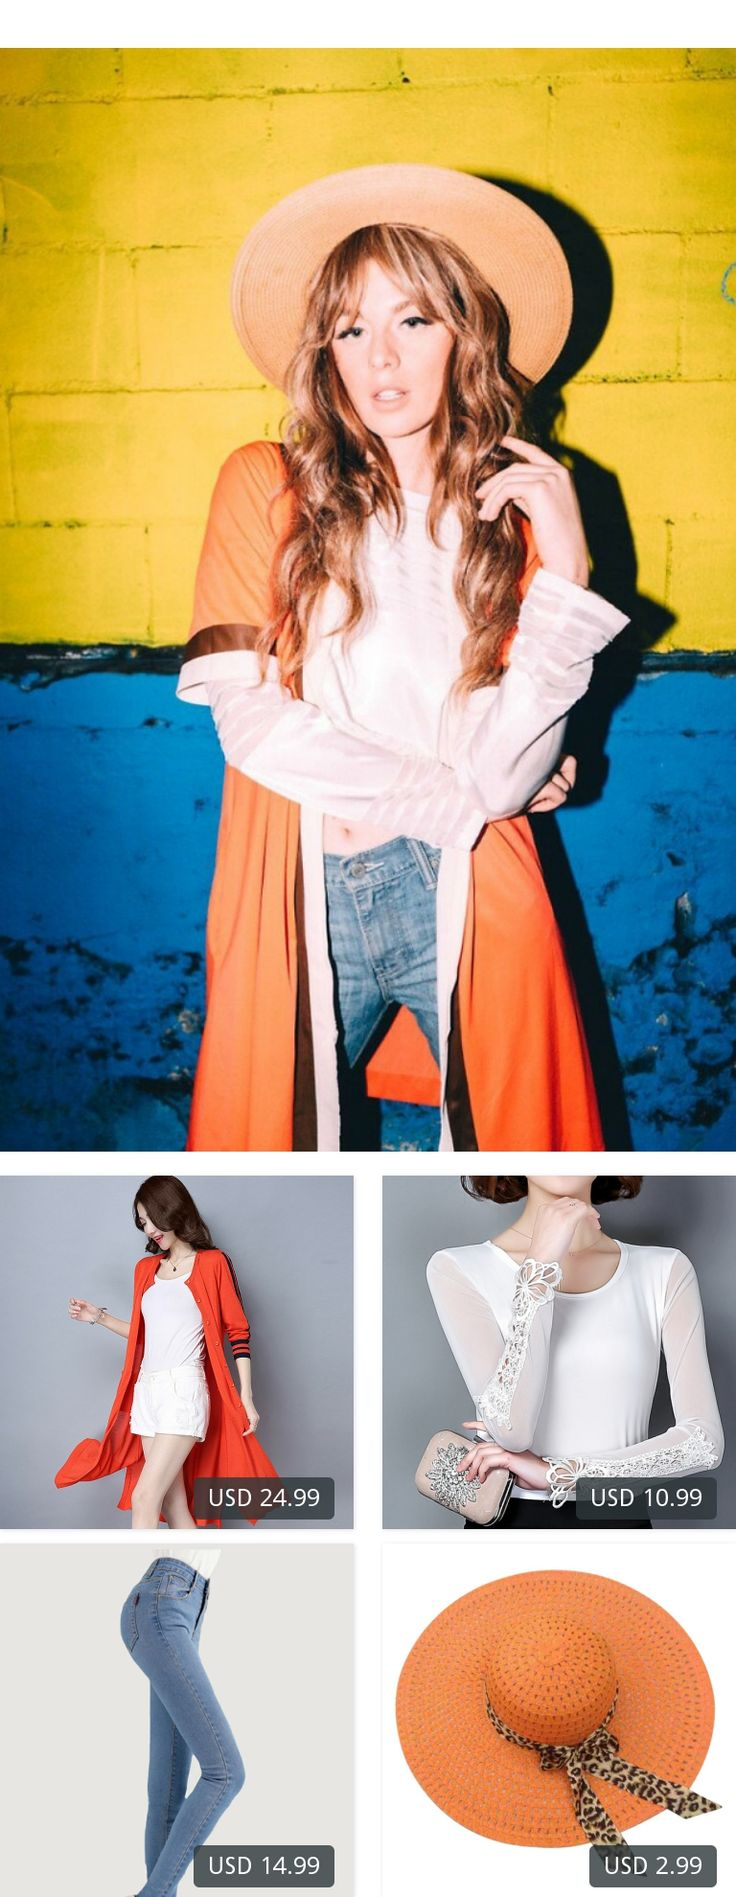 This is Ms. Morgan Ryan's buyer show in OurMall;  1.Coat Three Quarter Sleeves Black Orange Blue Long Cardigan Sweater  2.Top Tees Women T-shirt 2017 Long Sleeve Black/White Women Shirt Female Clothing Women t Shirt 3.Women Skinny Pencil Jeans Denim Elastic High Waist Pants Wash... please click the picture for detail. http://ourmall.com/?raaAVf